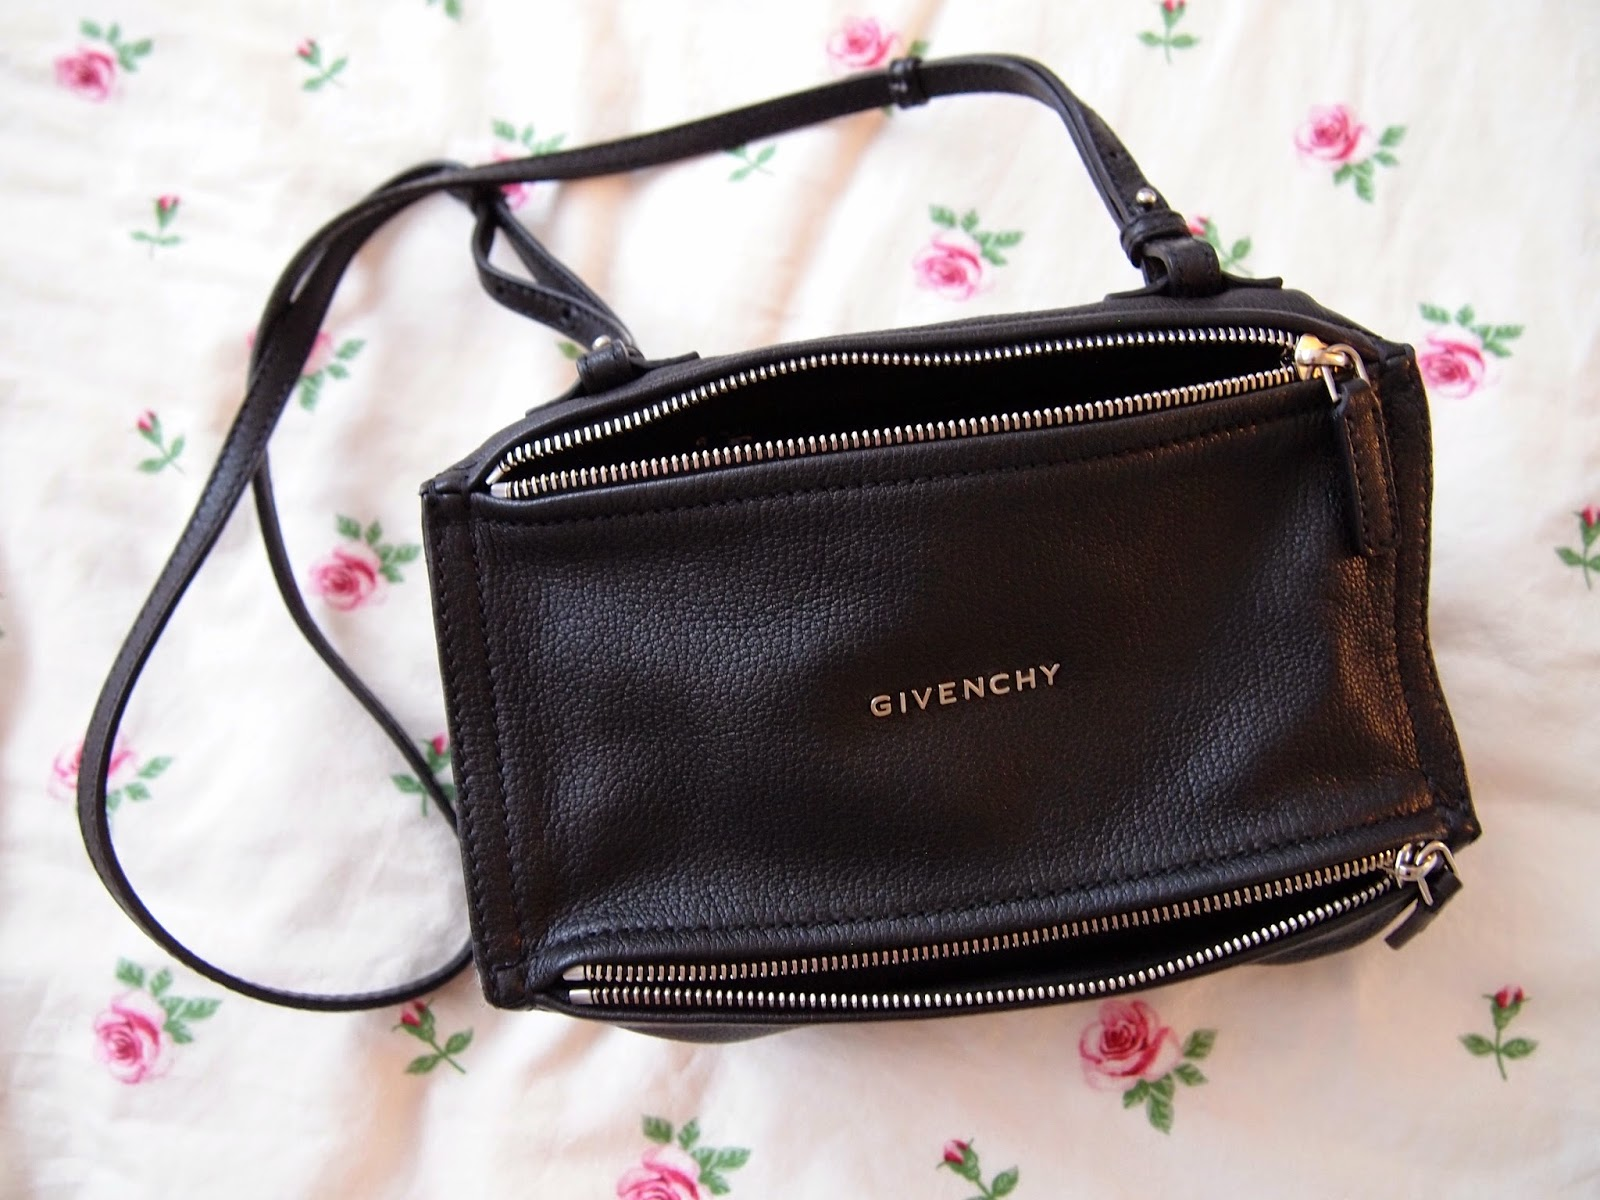 5f35f5b20d Givenchy Mini Pandora Messenger Bag in Black + Farfetch Review ...